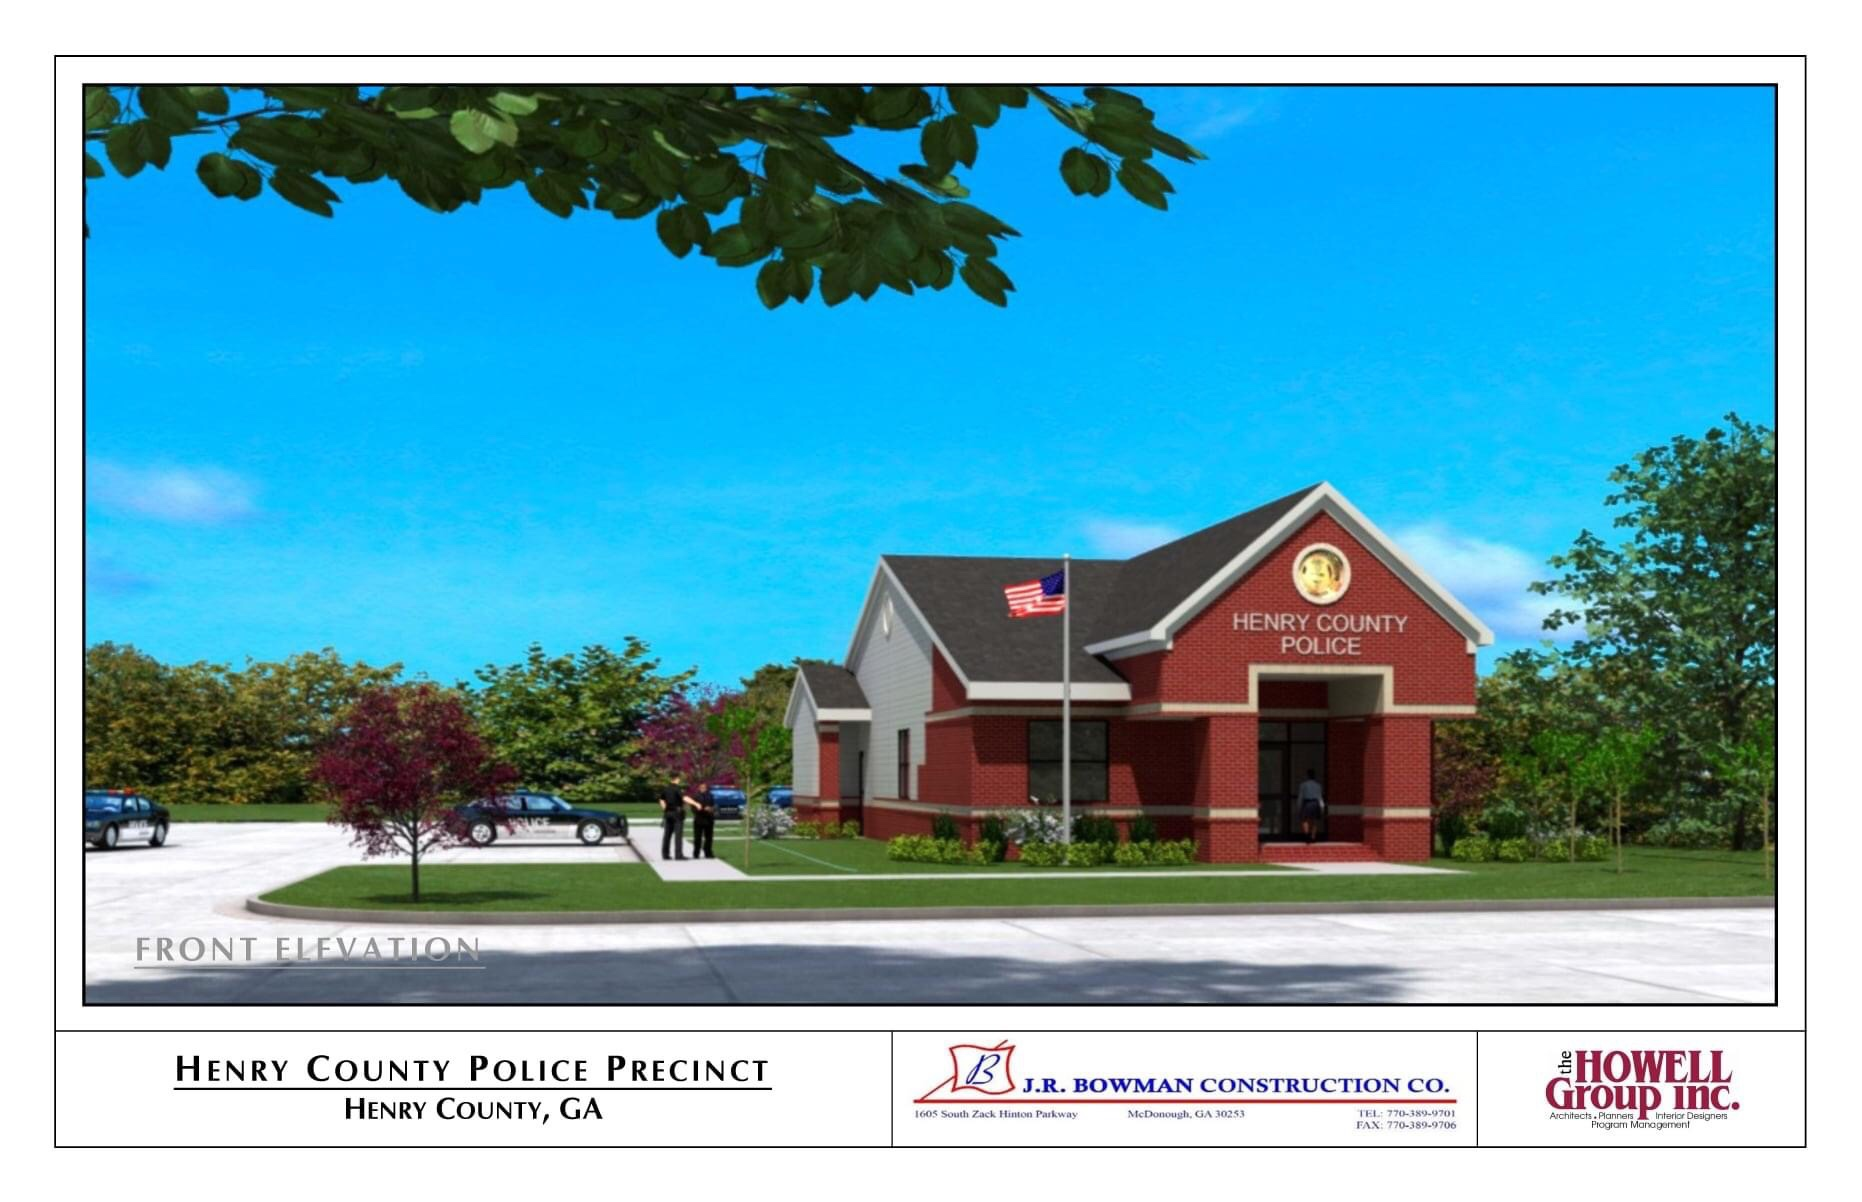 Concept front elevation for Fairview police precinct (J.R. Bowman Construction photo)